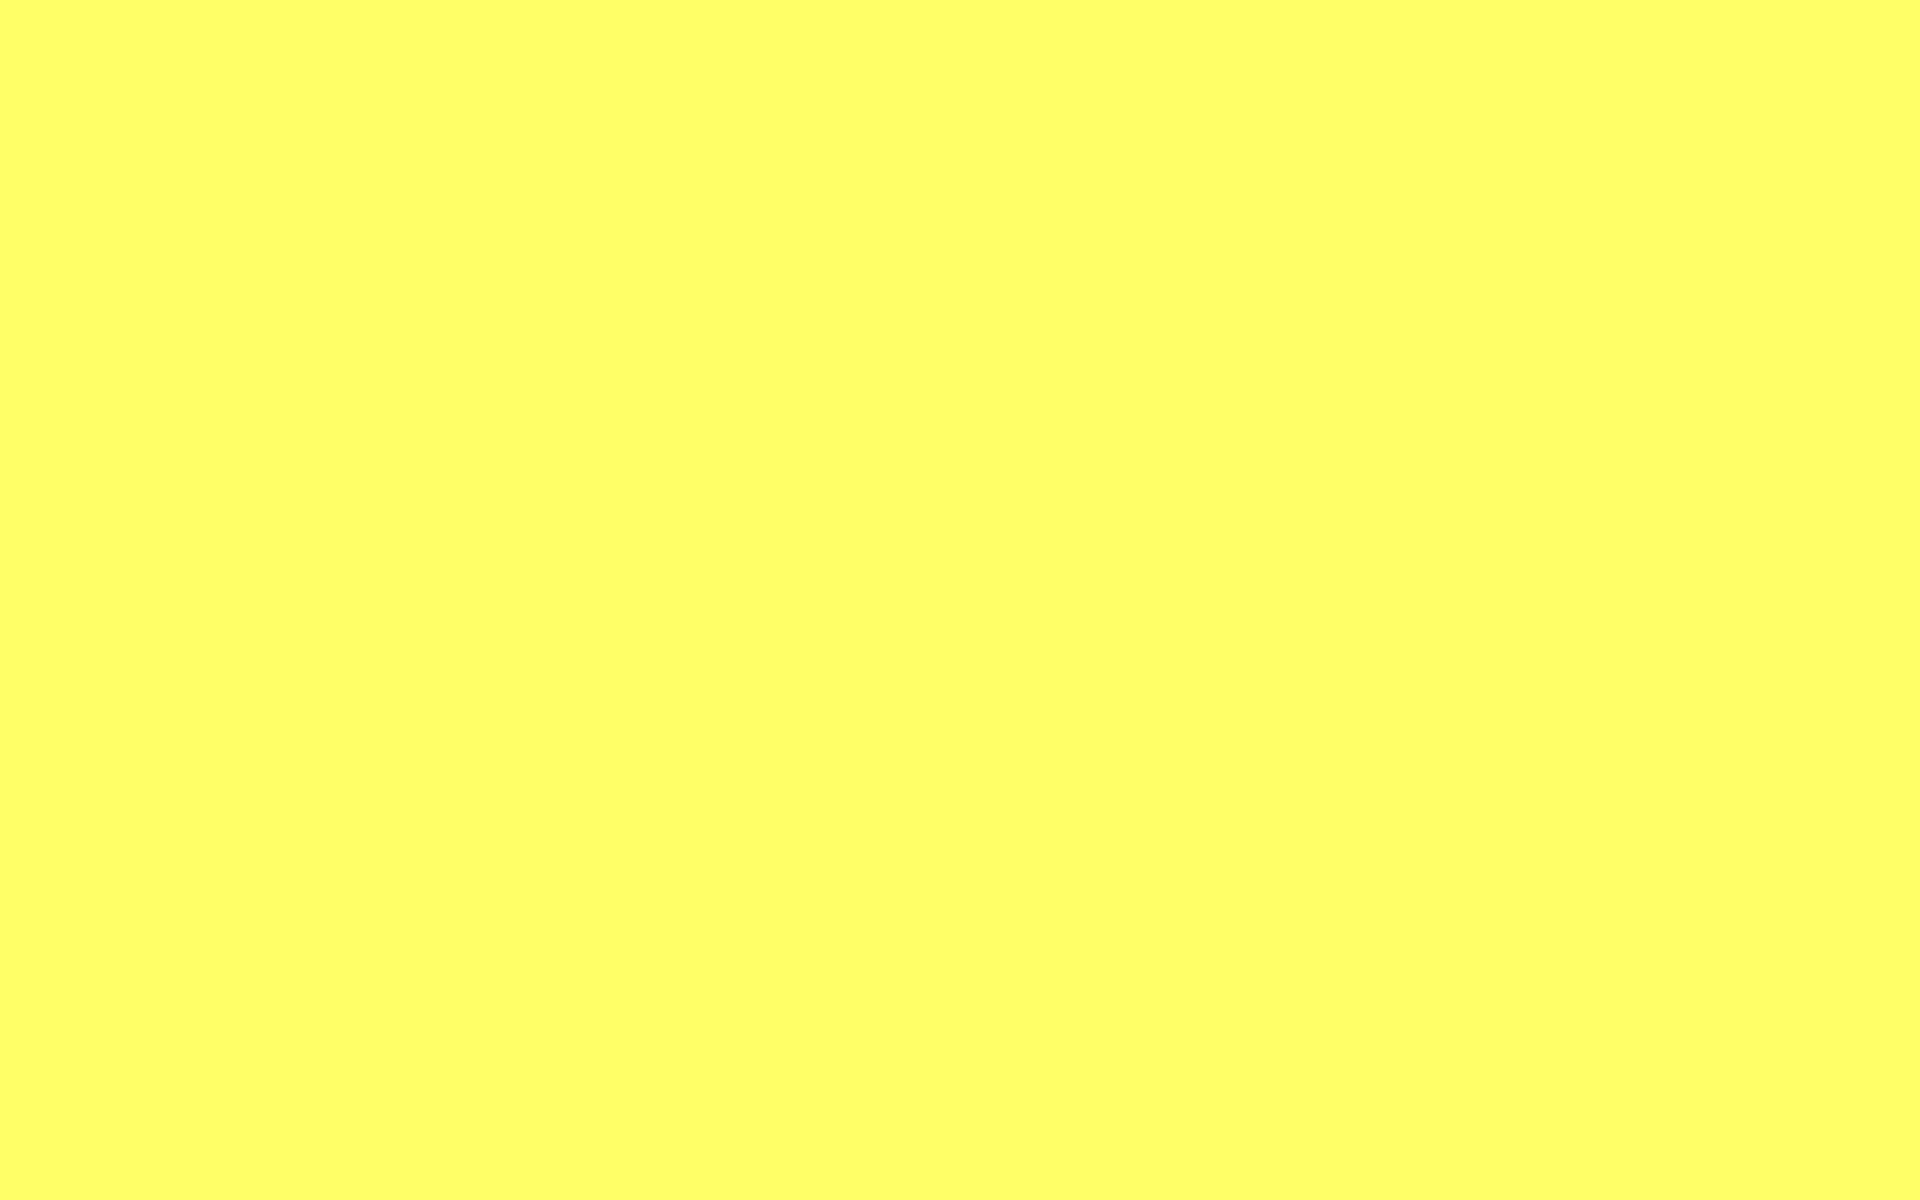 Background Pics: solid colors | Things for Your Profile *Requests OPEN*